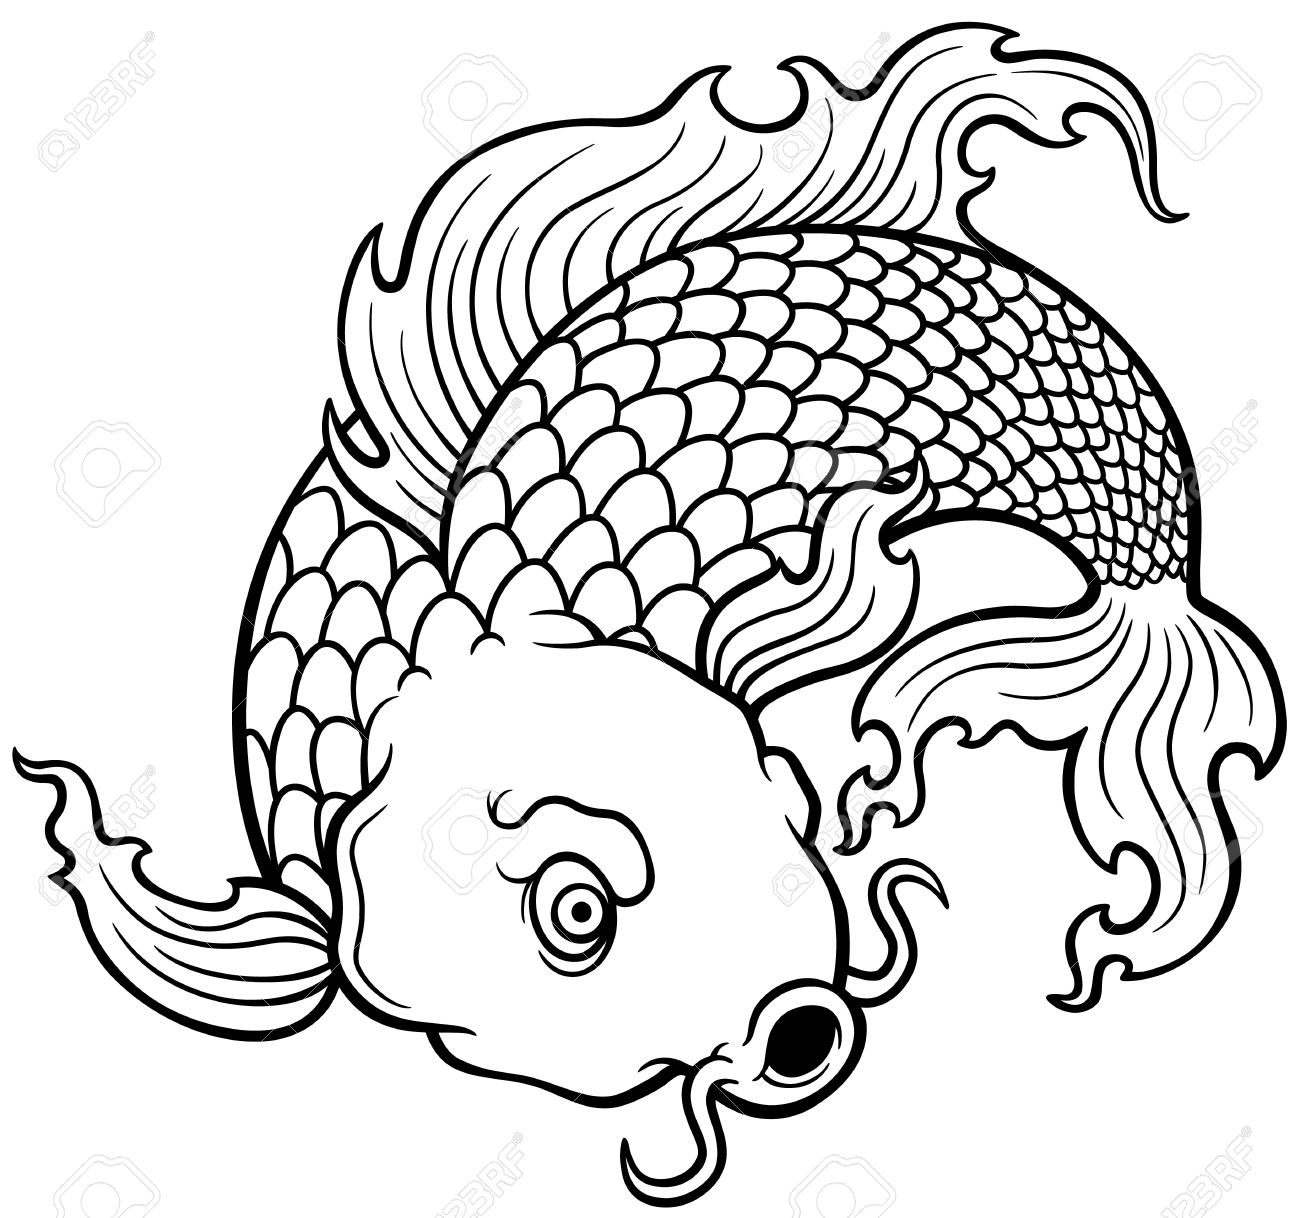 Vector Illustration Of Koi Fish